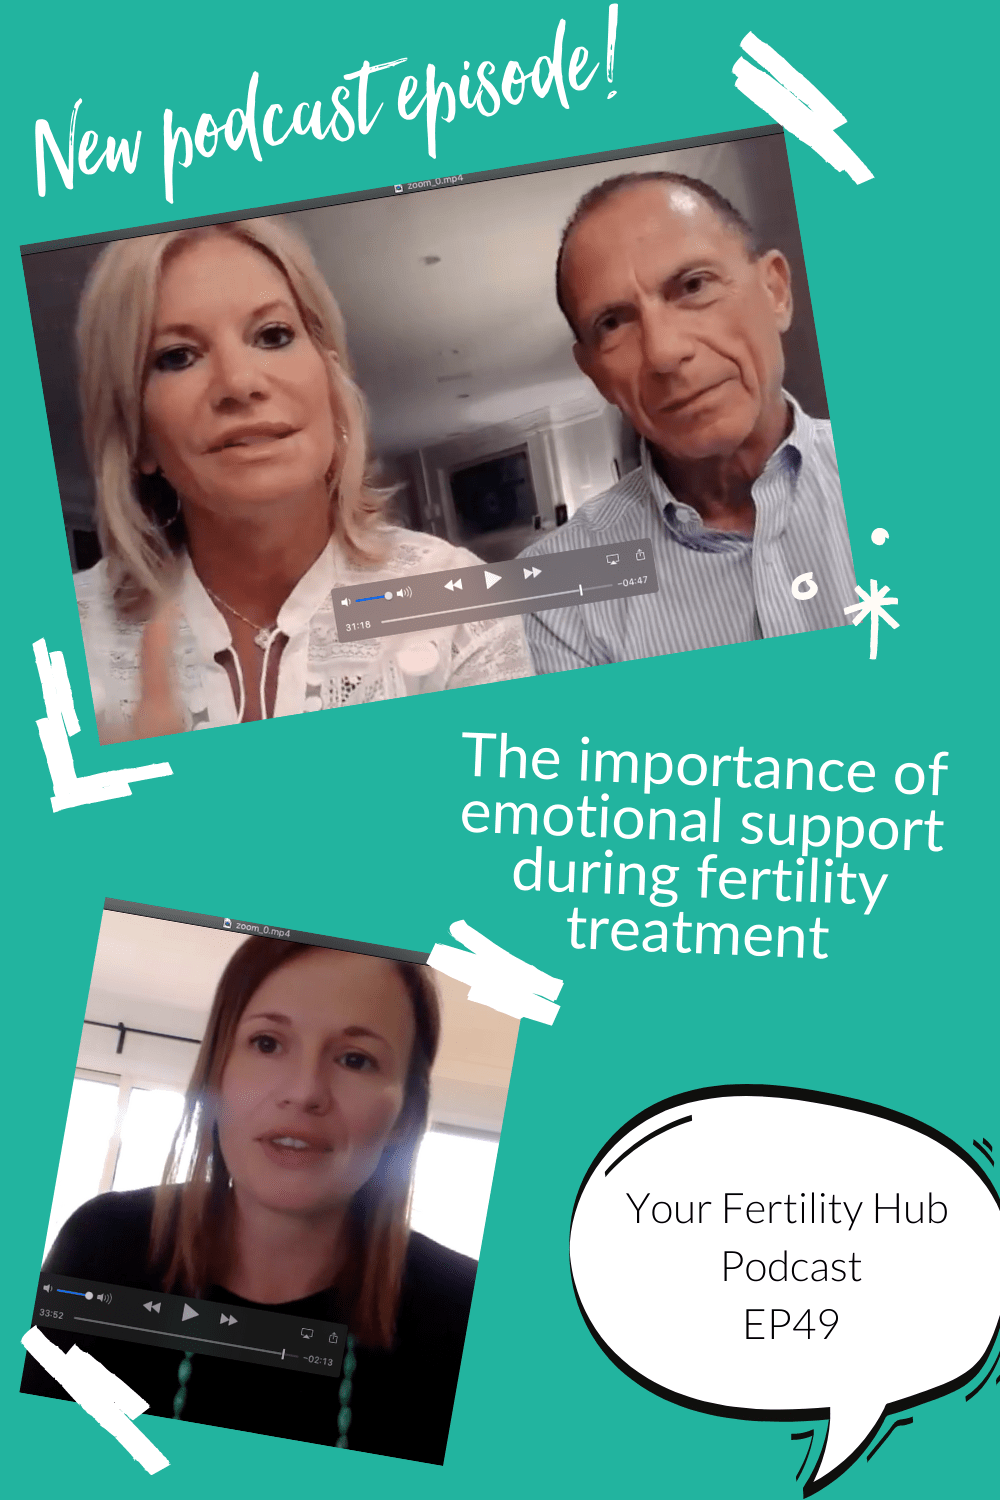 EP49 - the importance of emotional support during fertility treatment